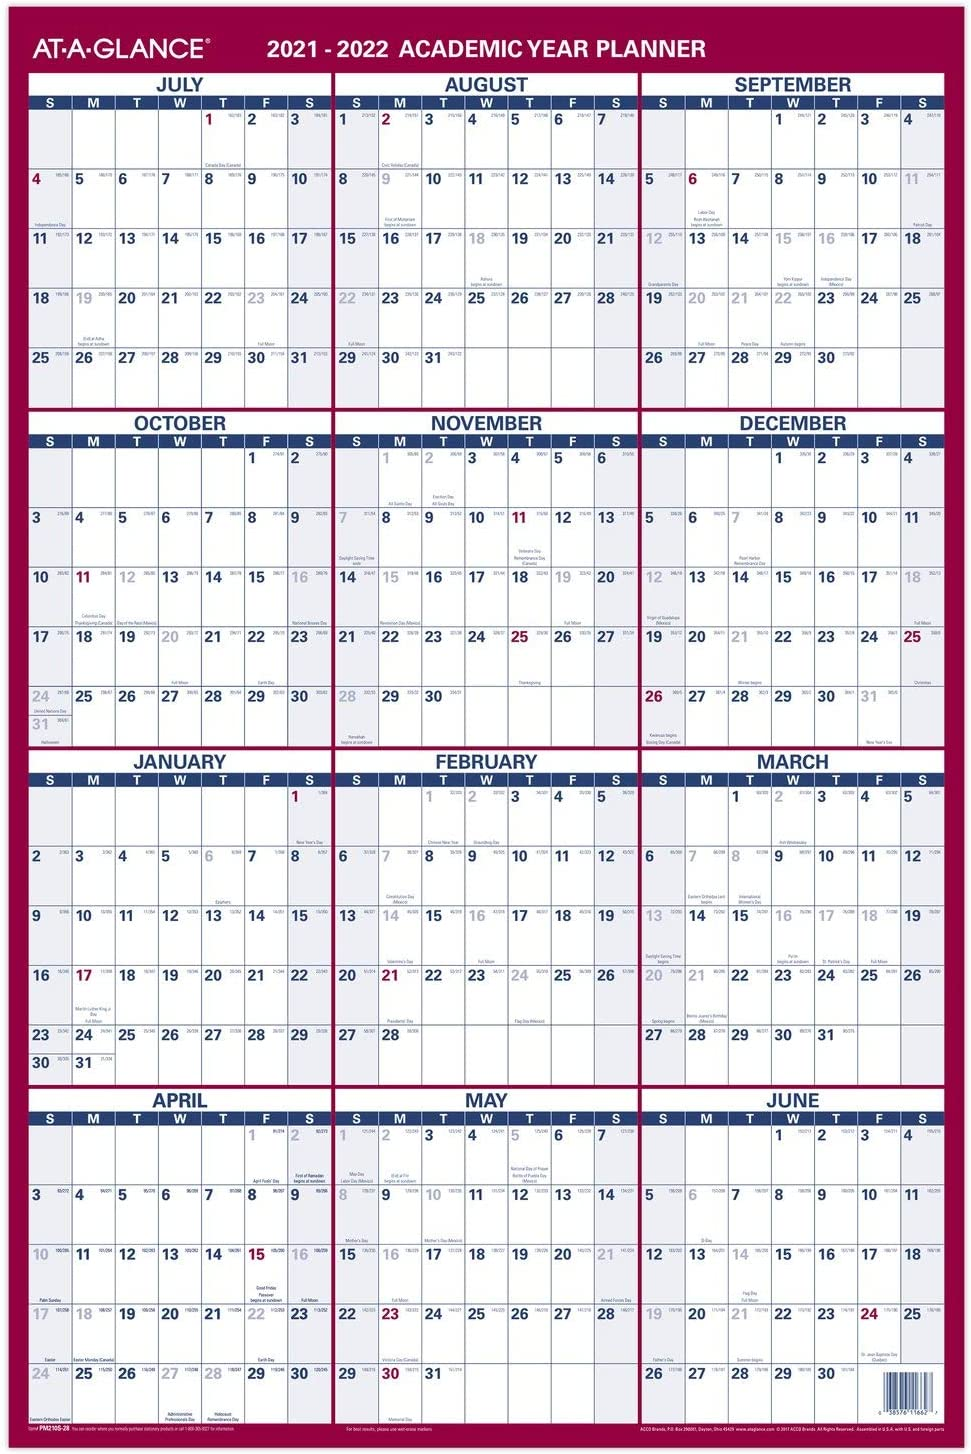 At A Glance Wall Calendar 2022.Amazon Com 2021 2022 Erasable Calendar Dry Erase Wall Planner By At A Glance 24 X 36 Large Academic Regular Year Double Sided Vertical Pm210s28 Office Products